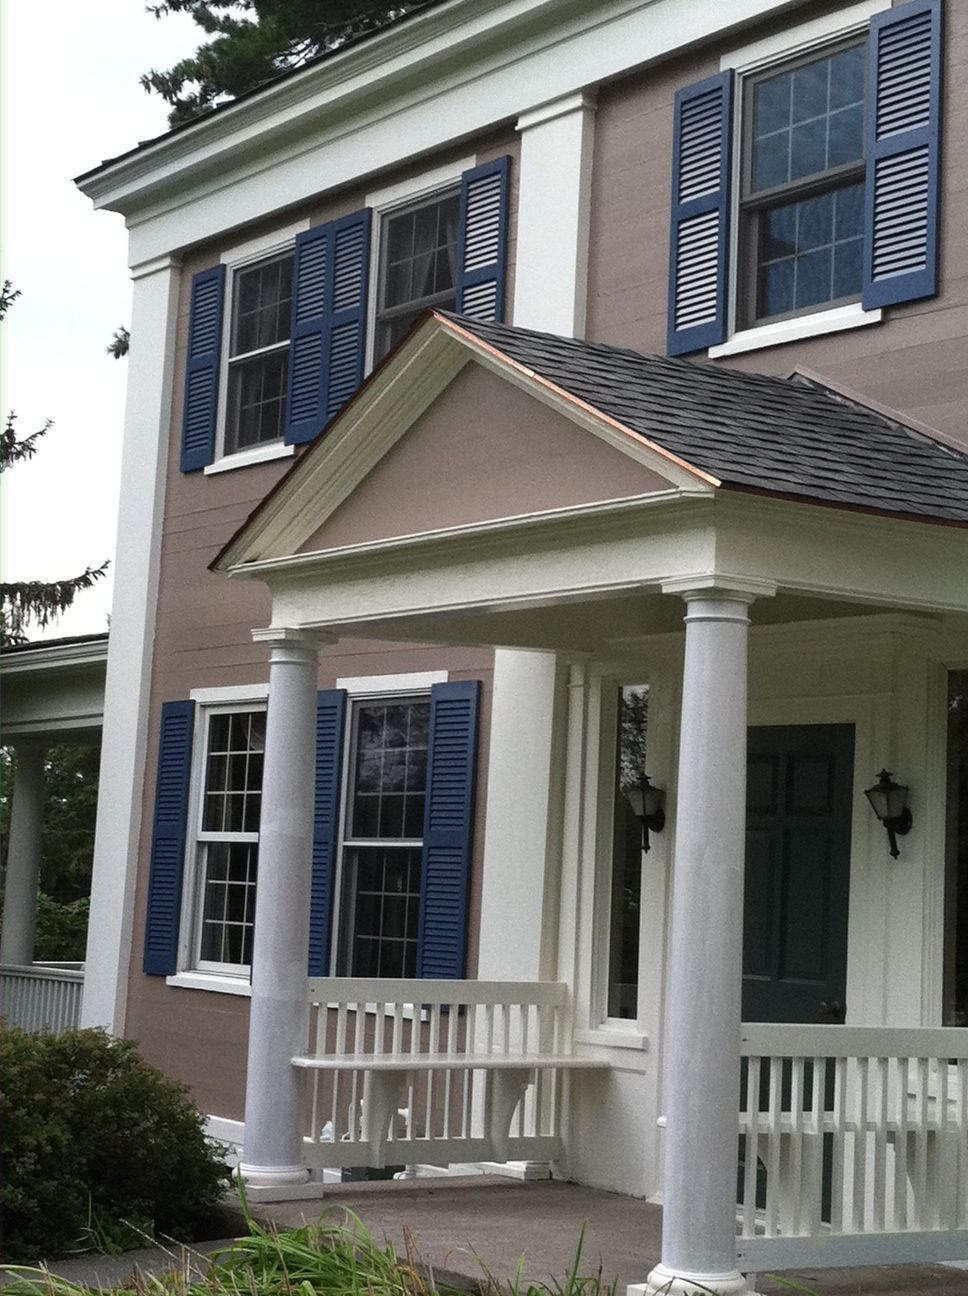 Exterior house color schemes with black shutters - Shutters Shatter Traditional Color Combinations Grey Exterior Houseshouse